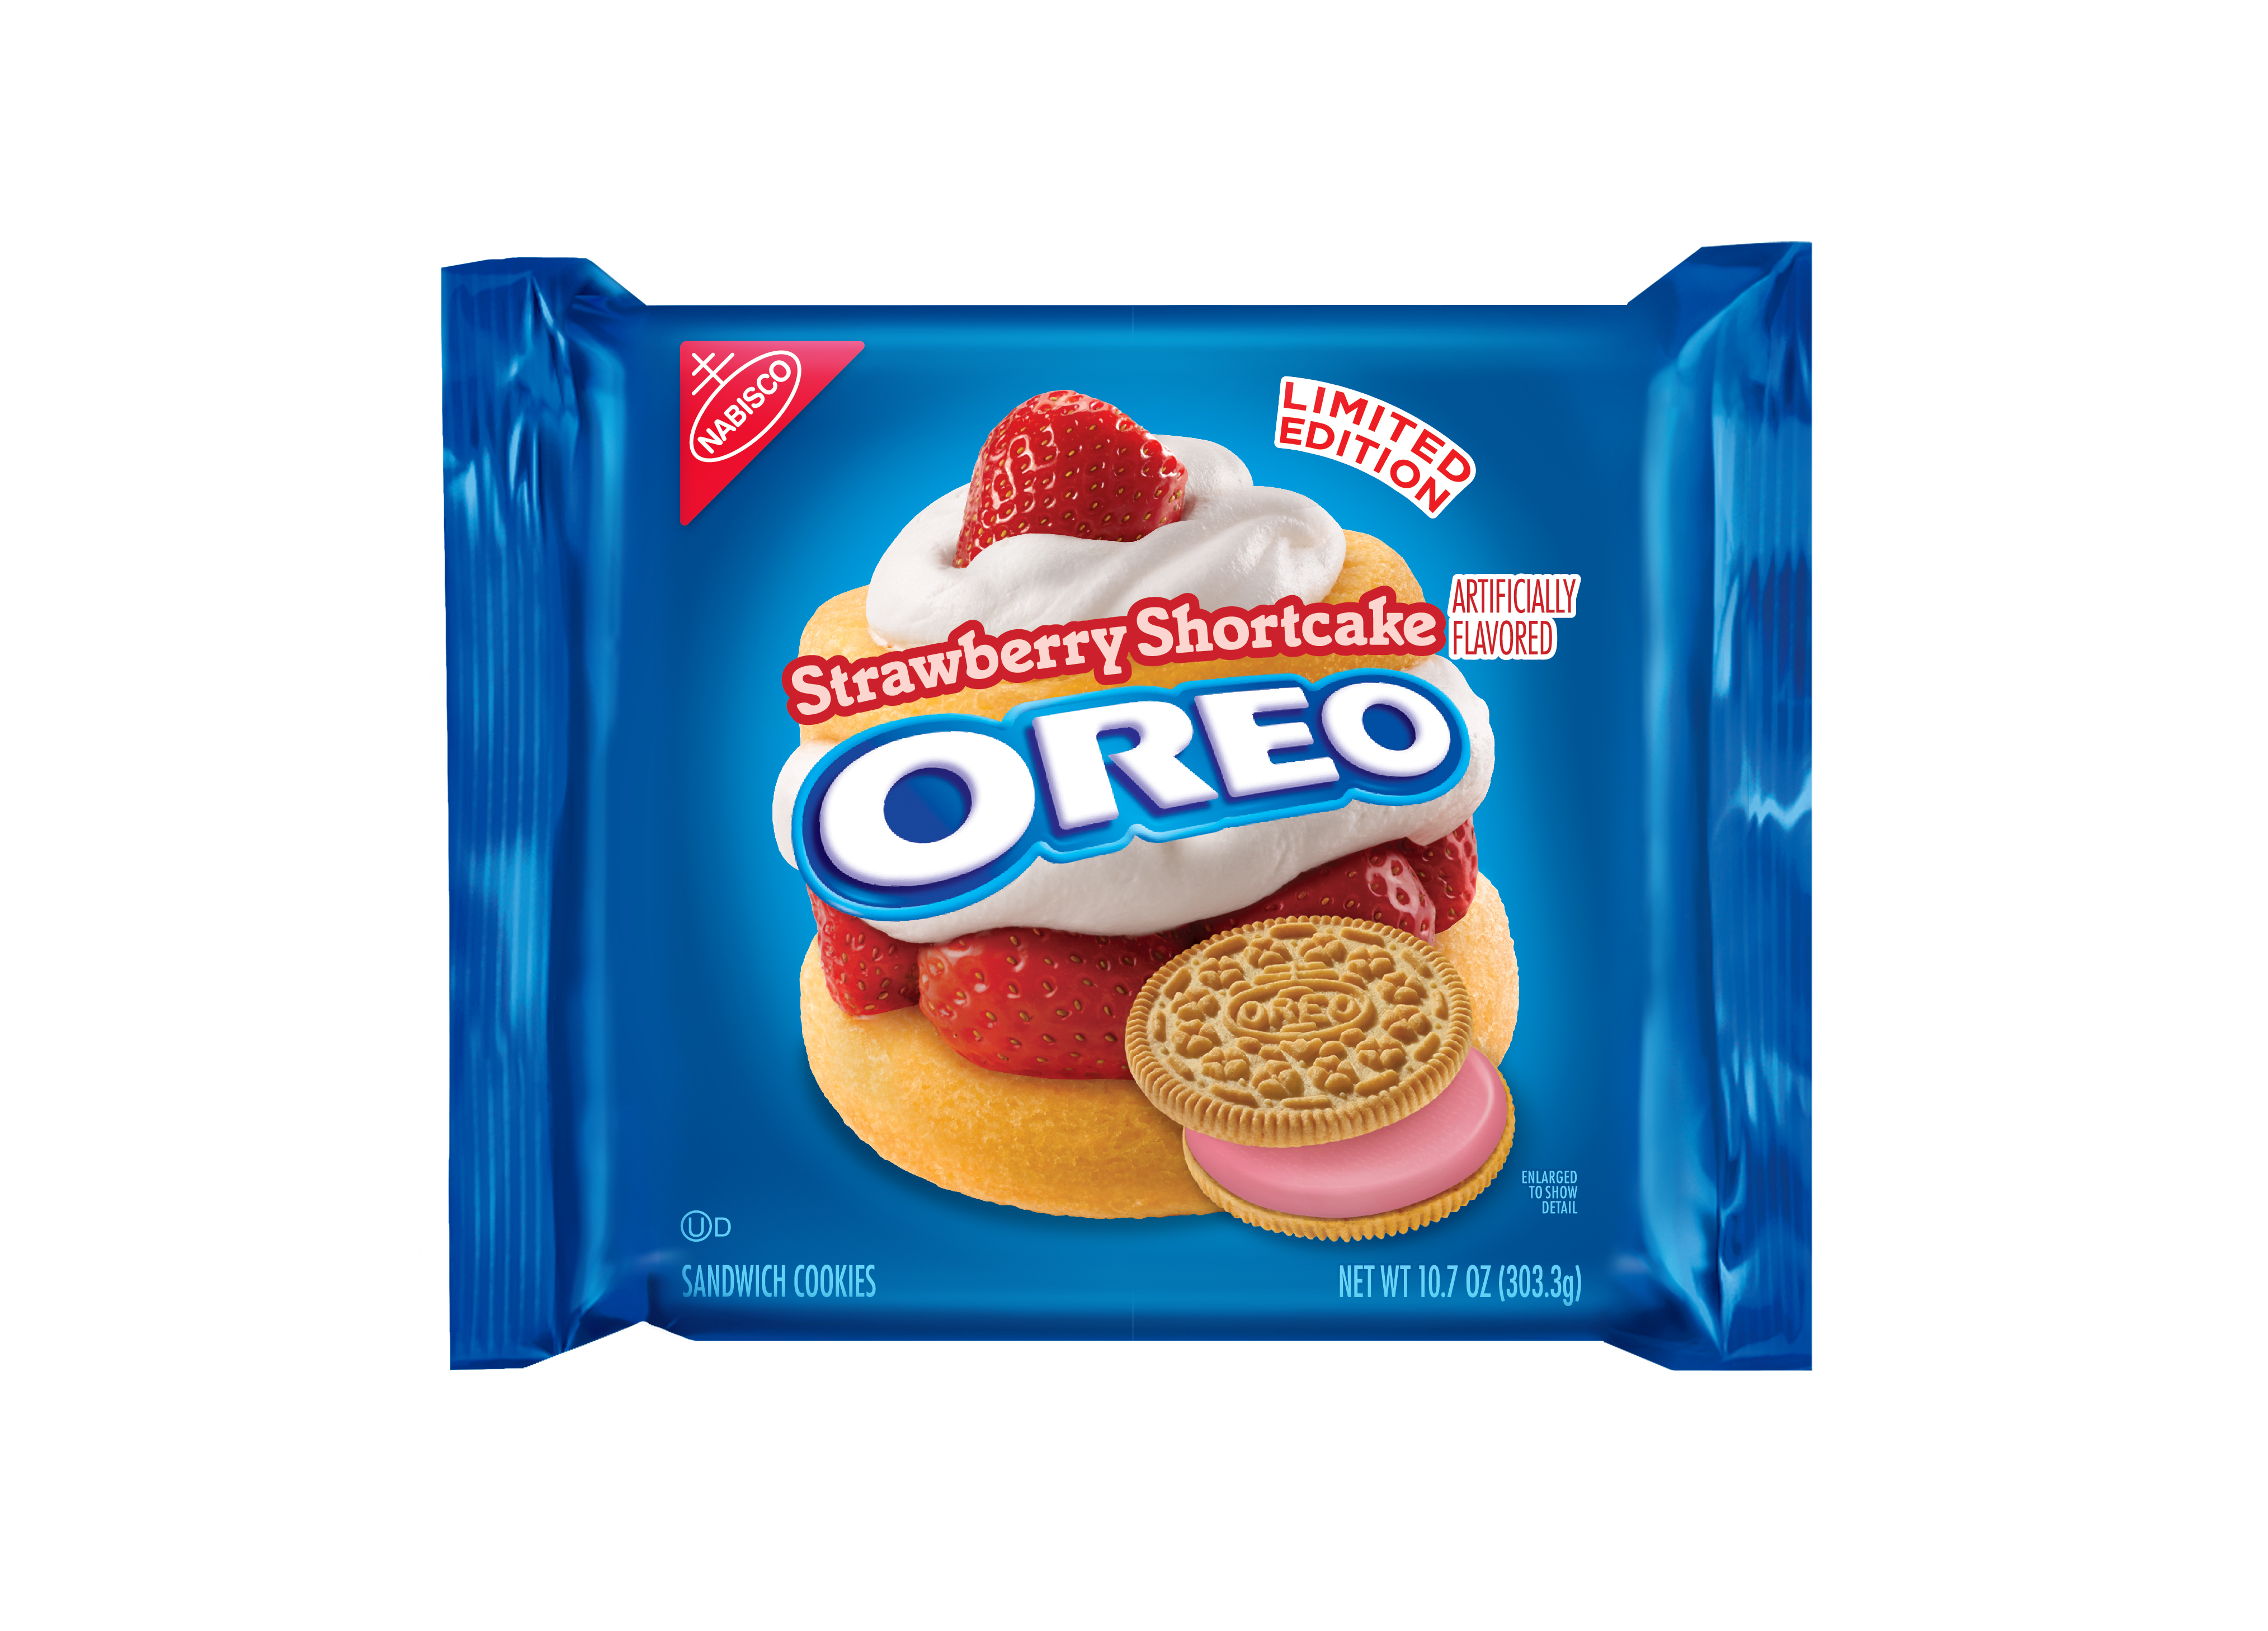 Strawberry shortcake flavored Oreos will hit stores April 4 for a limited time only.